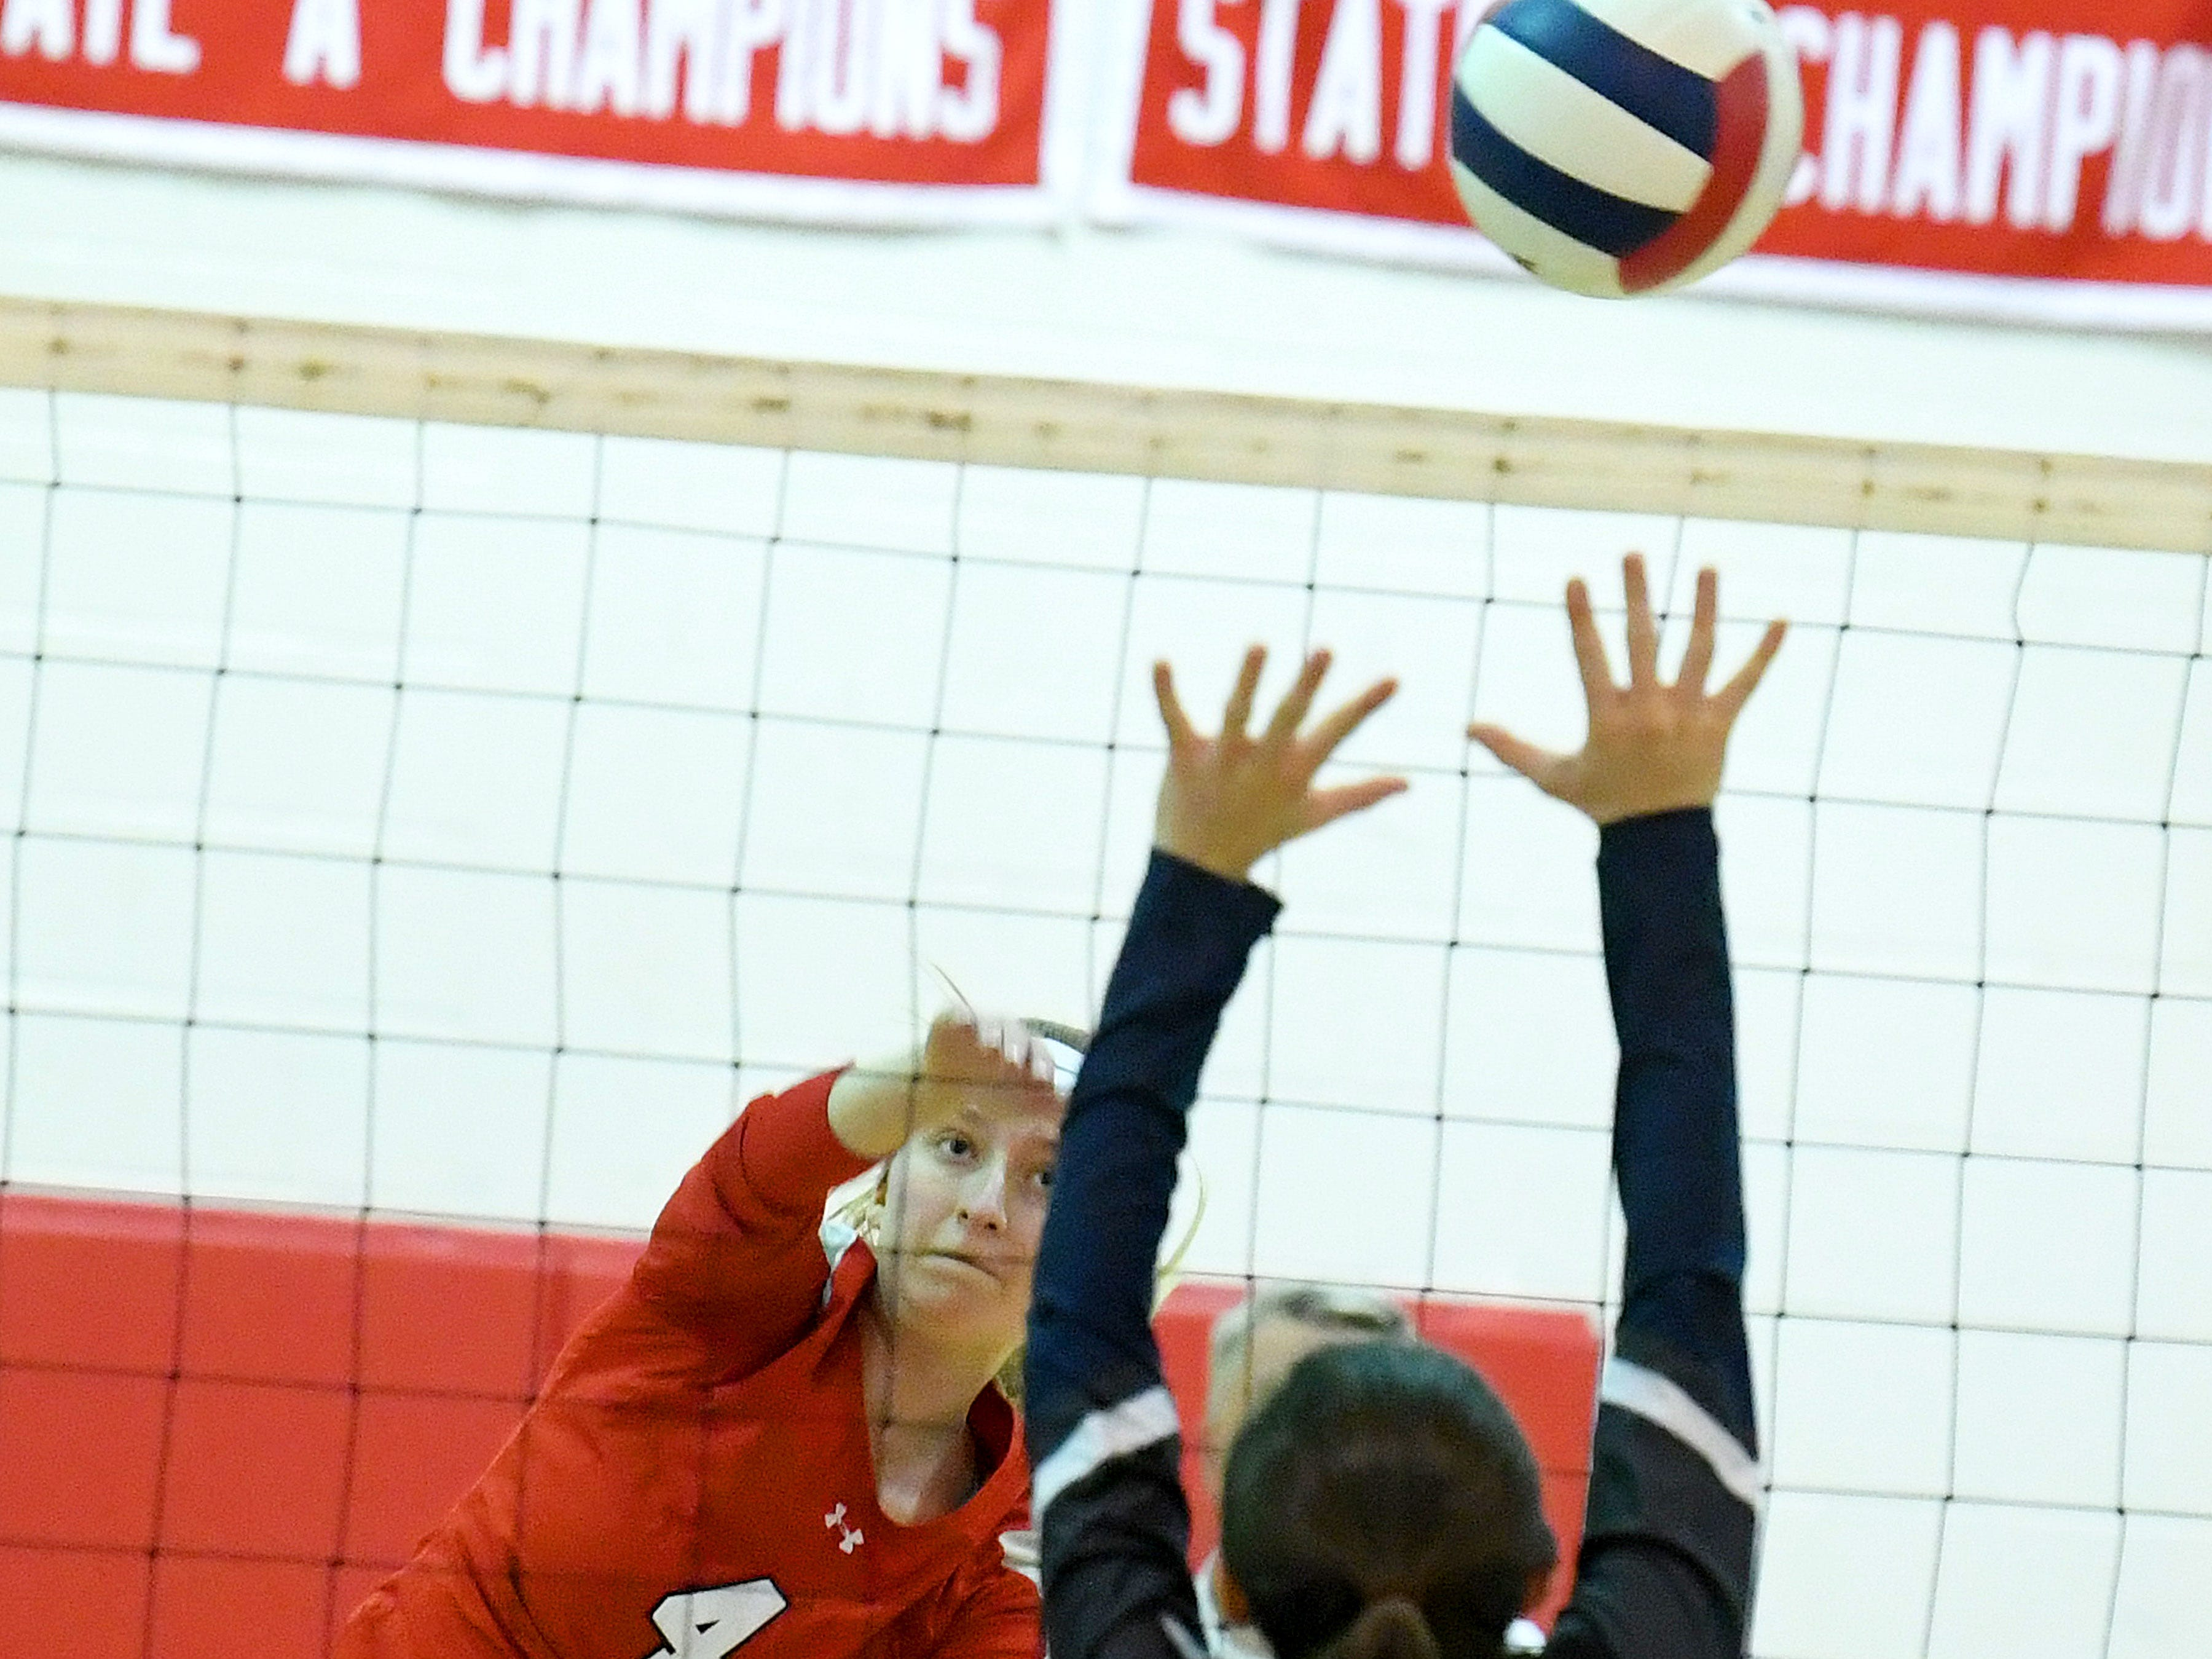 Riverheads' Emma Tomlinson spikes the ball across the net during a Region 1B quarterfinal match, played in Greenville on Thursday, Nov. 1, 2018.